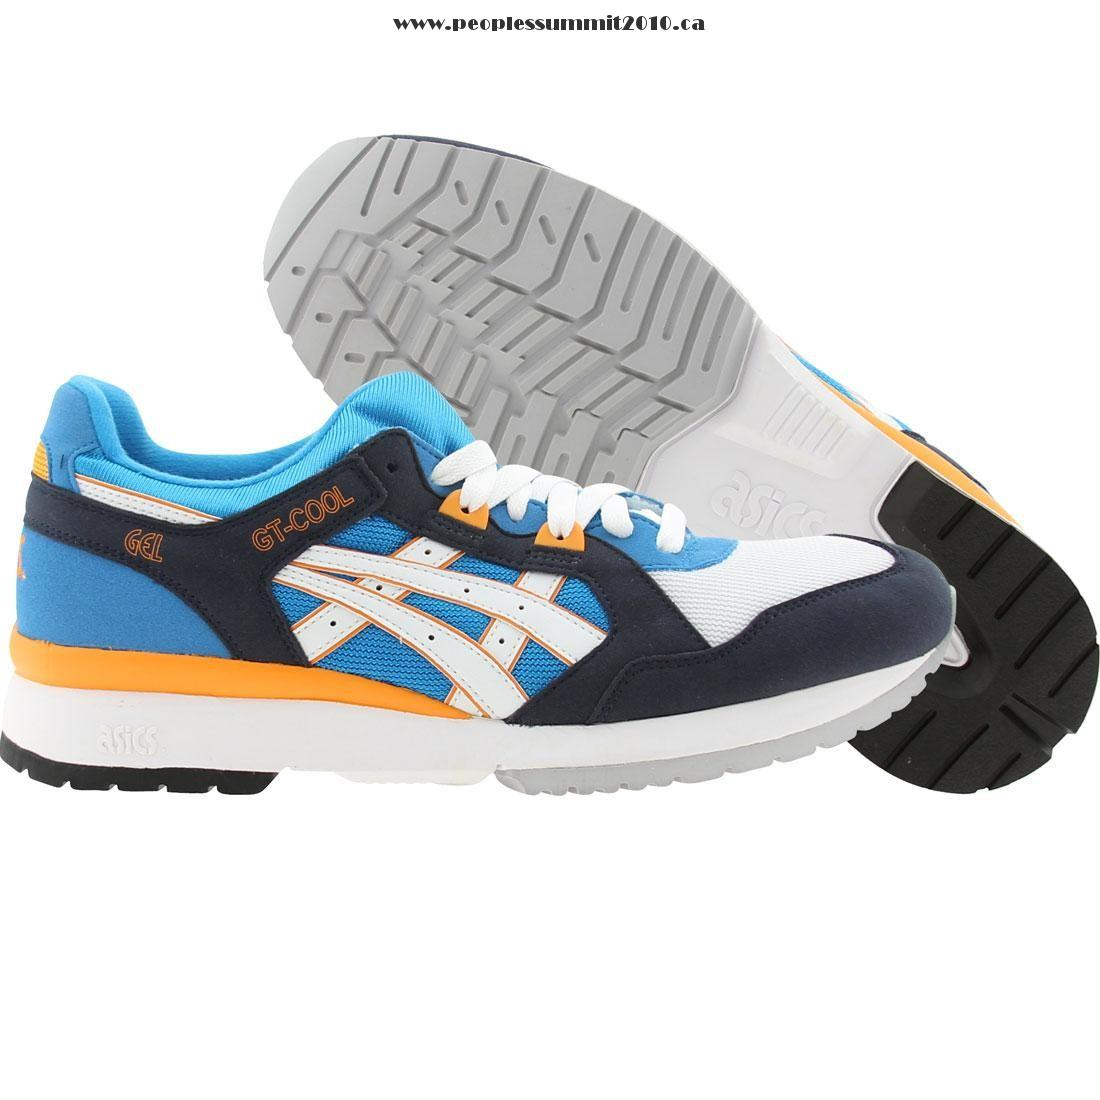 Terrific Asics Shoes on Discount Inspiration | Cozy Asics Coupon Code